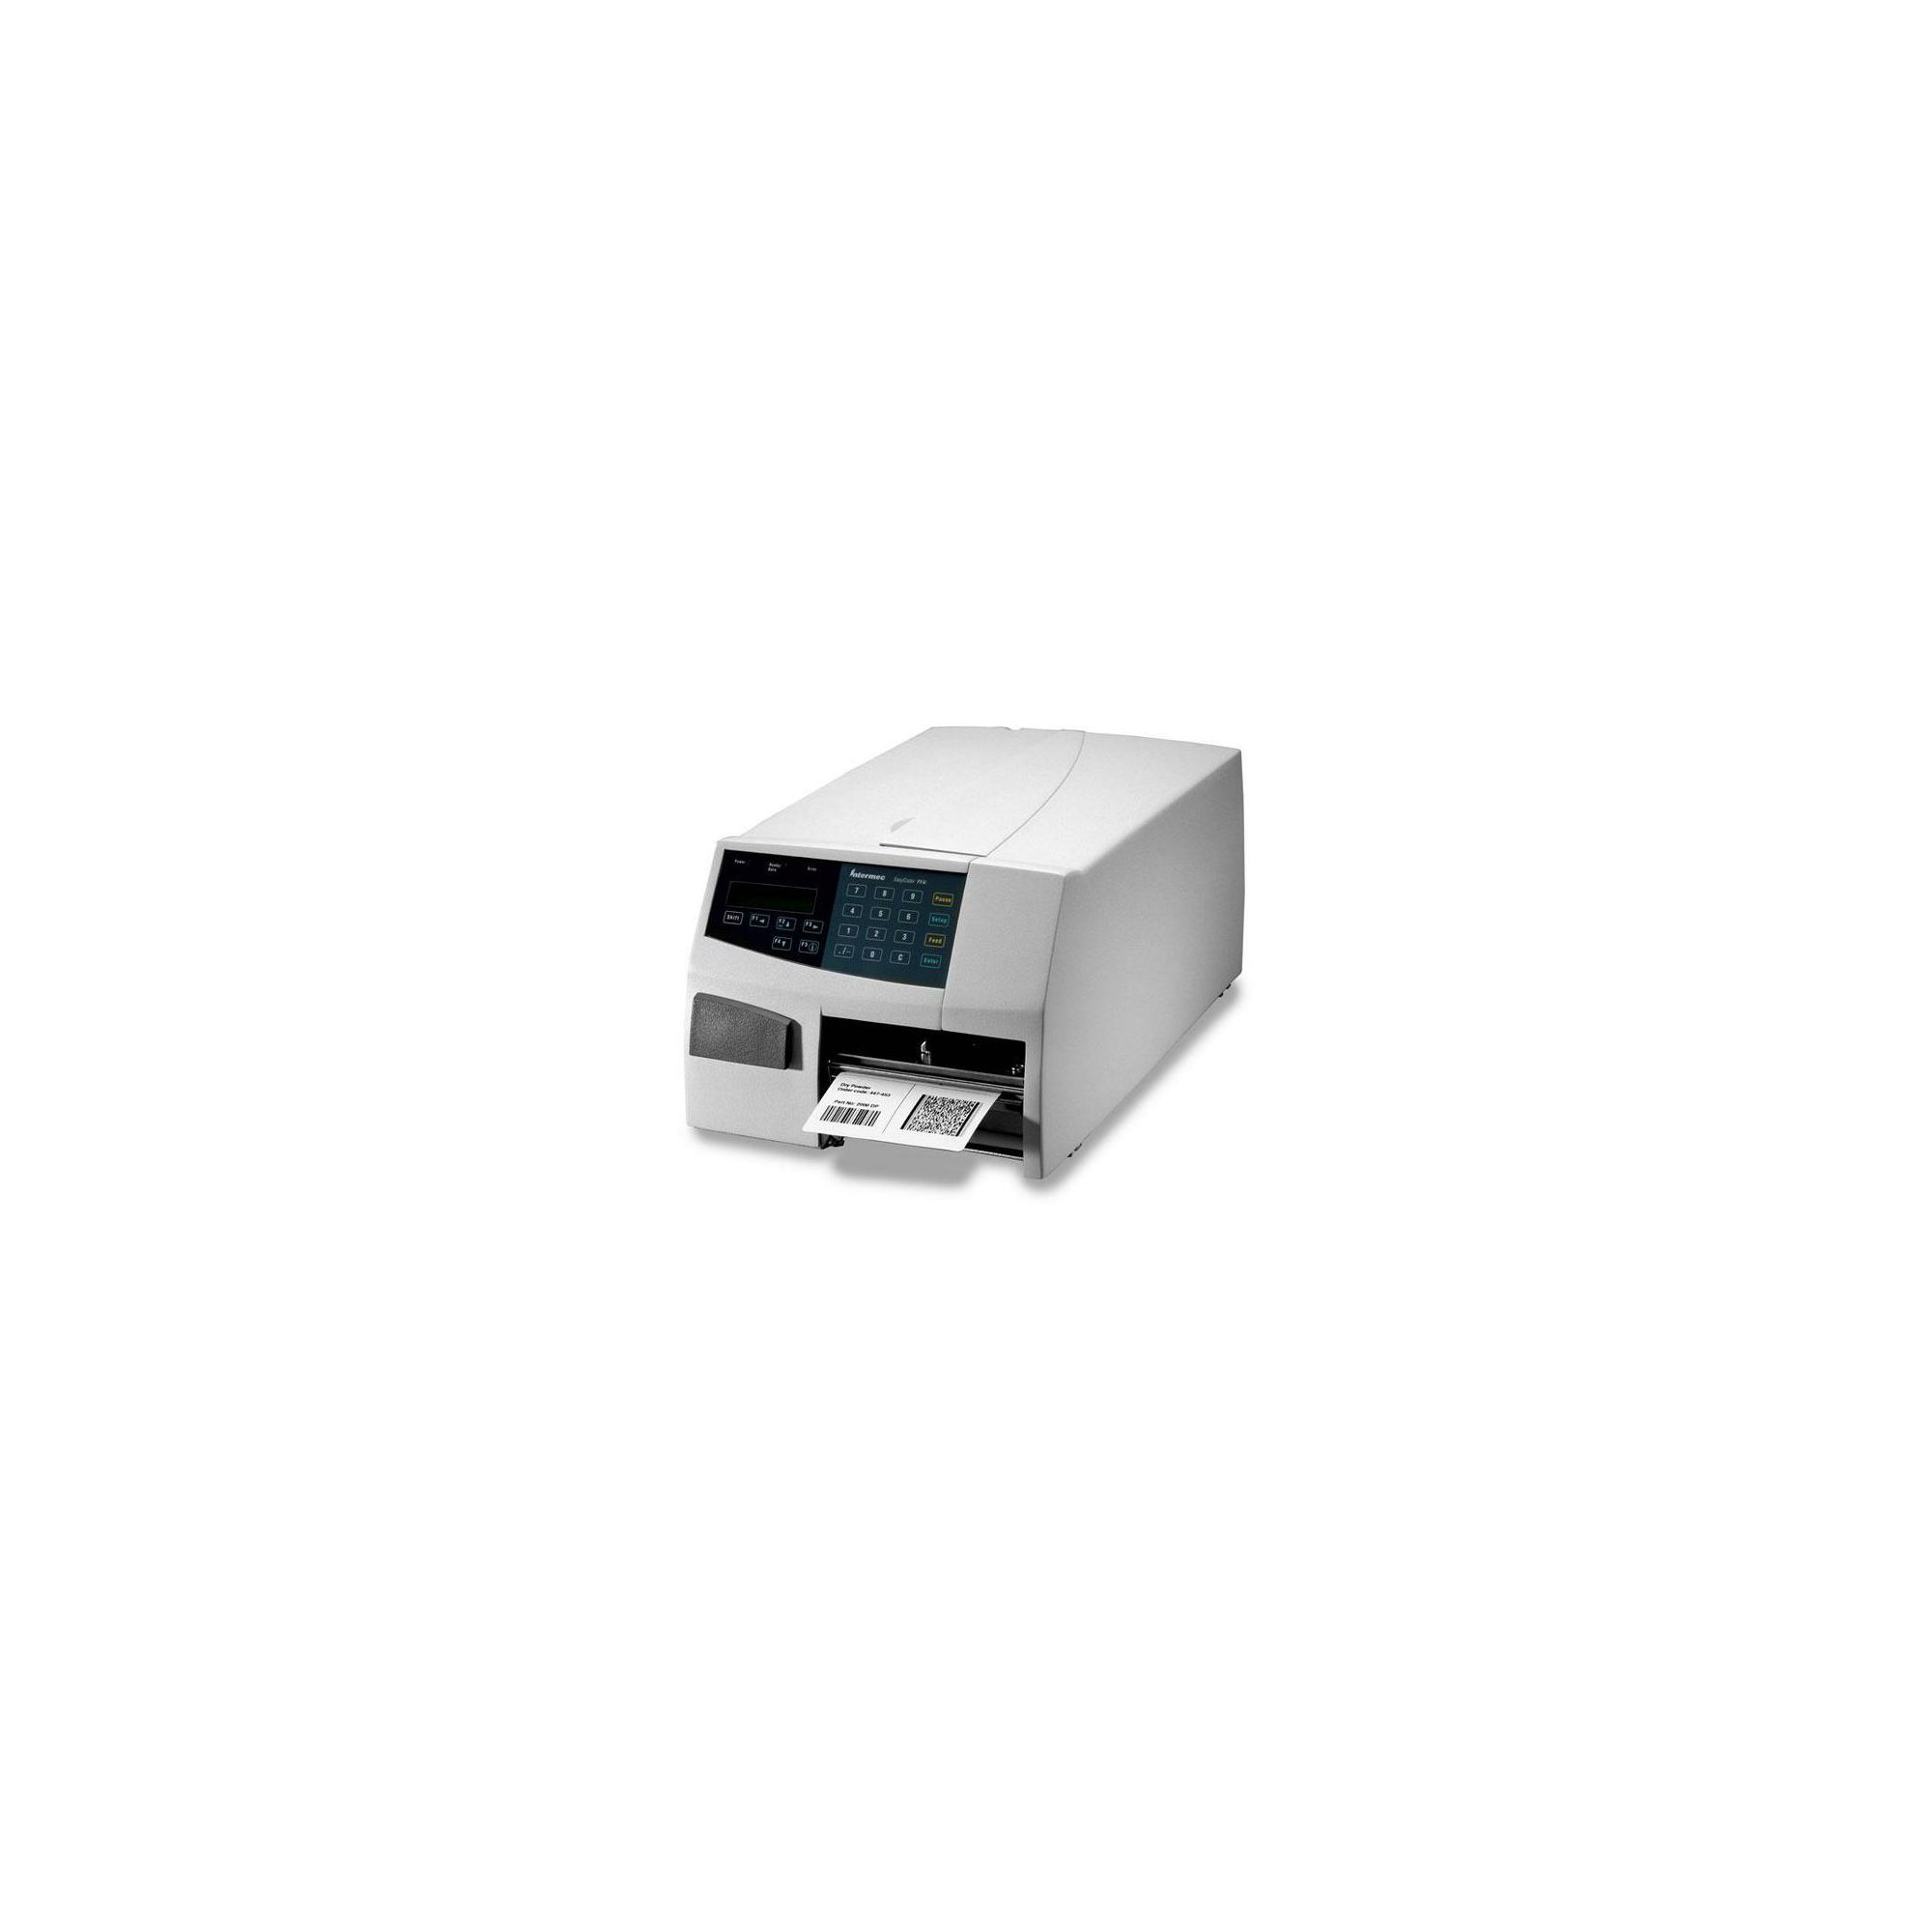 Intermec EasyCoder PF4i Mid-Range Thermal Printer at Tesco Direct